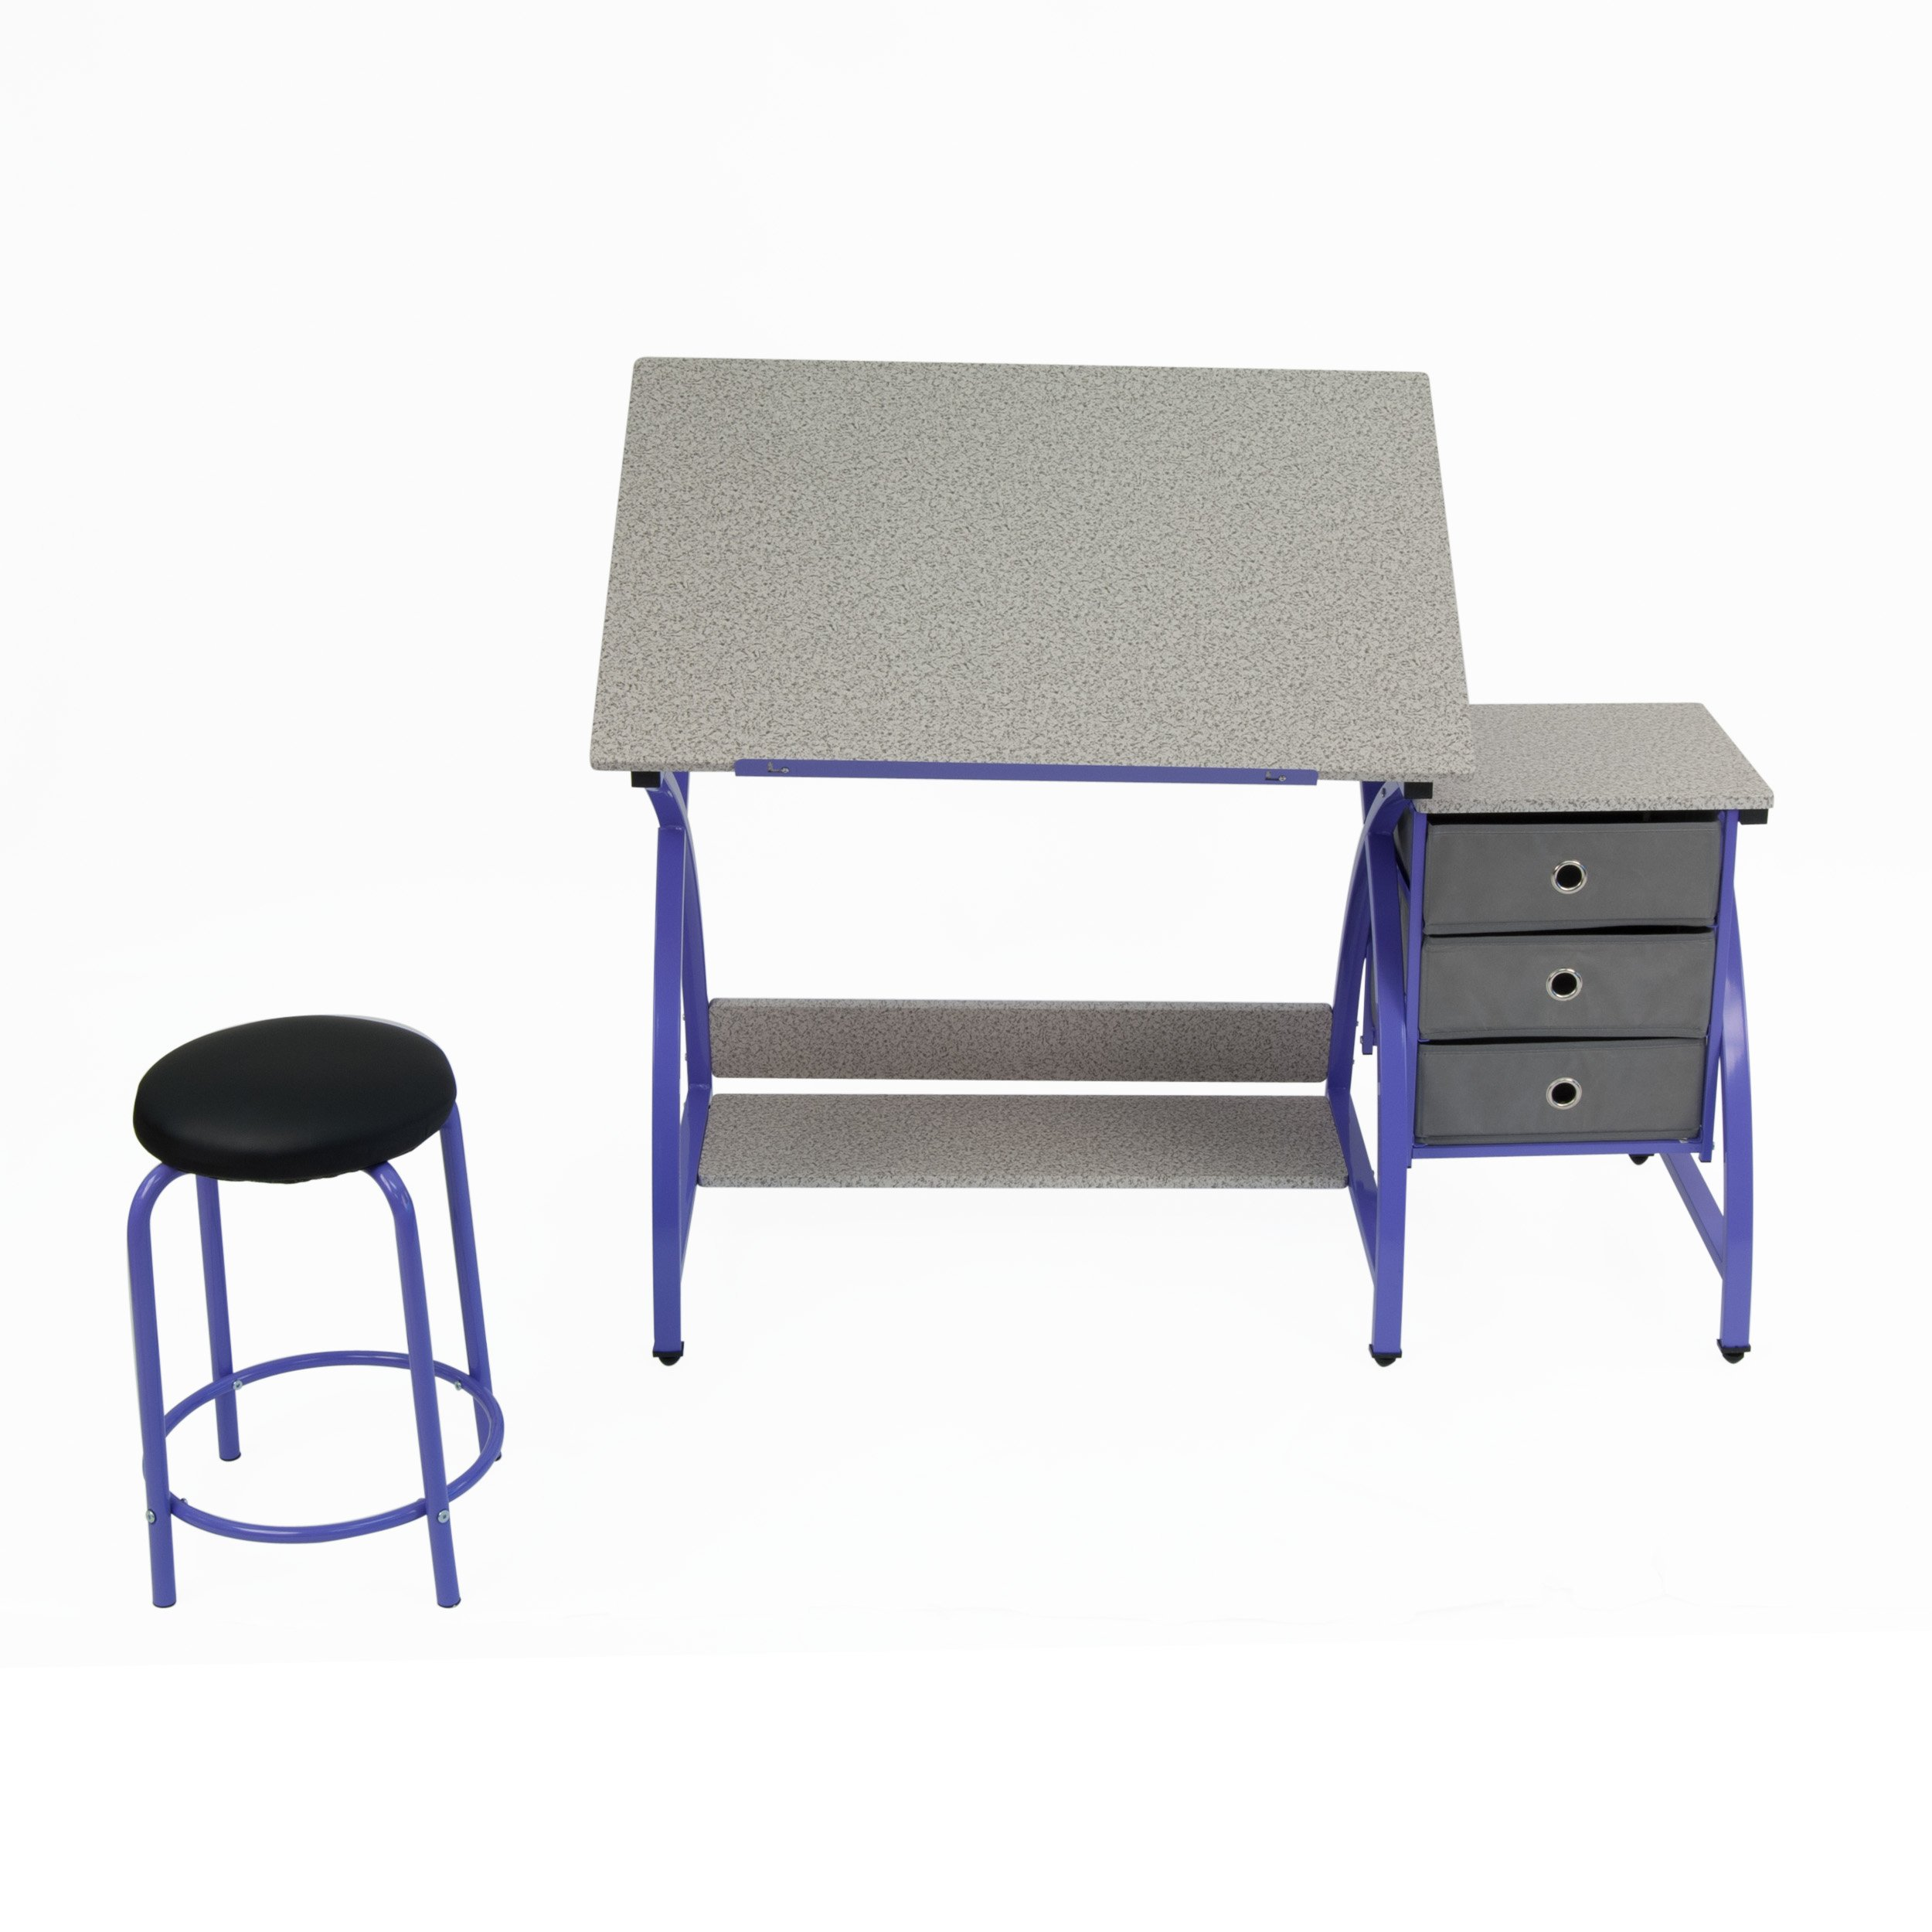 Comet Center with Stool in Purple / Spatter Gray by SD STUDIO DESIGNS (Image #3)